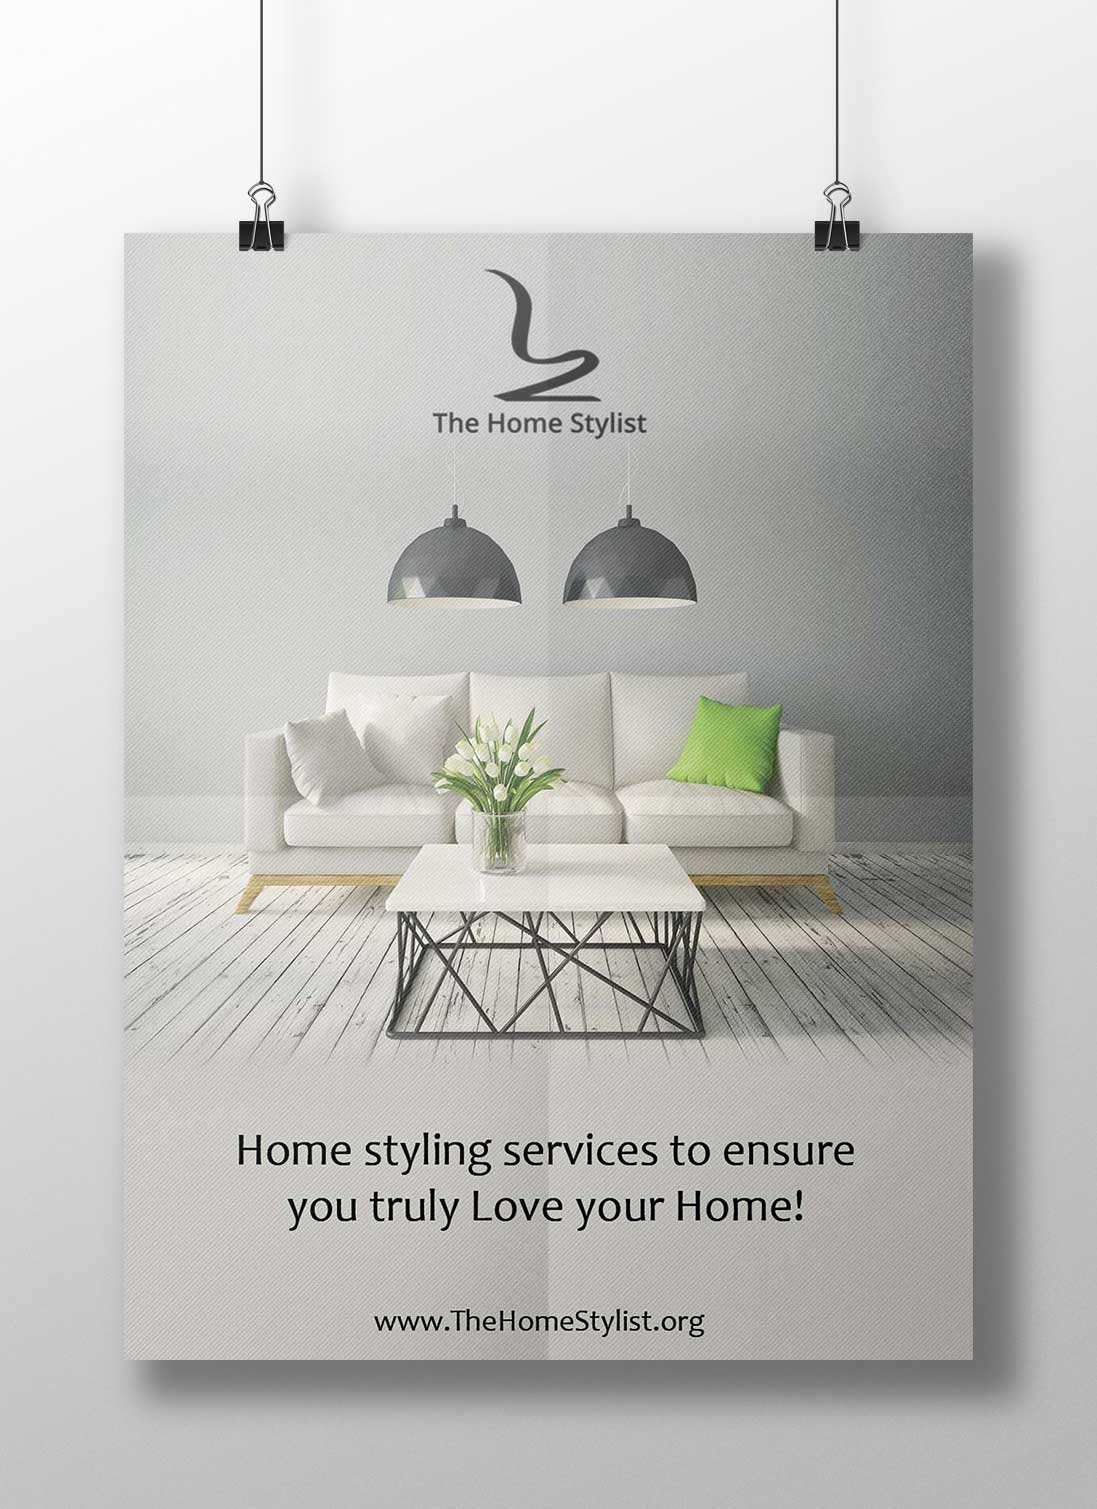 The Home Styling - Poster Design